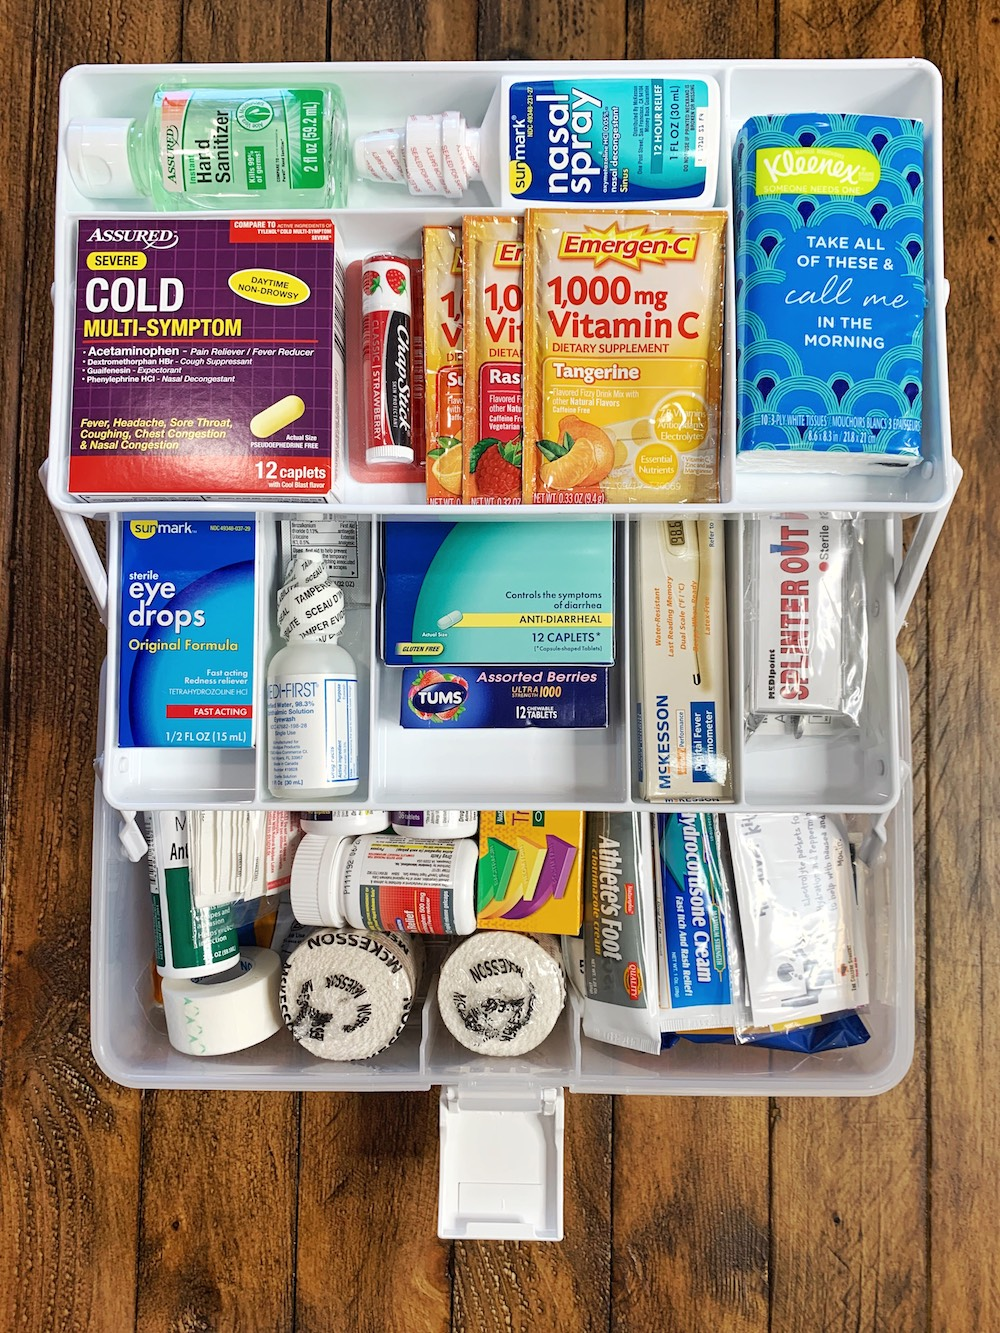 The College Student First Aid Kit open